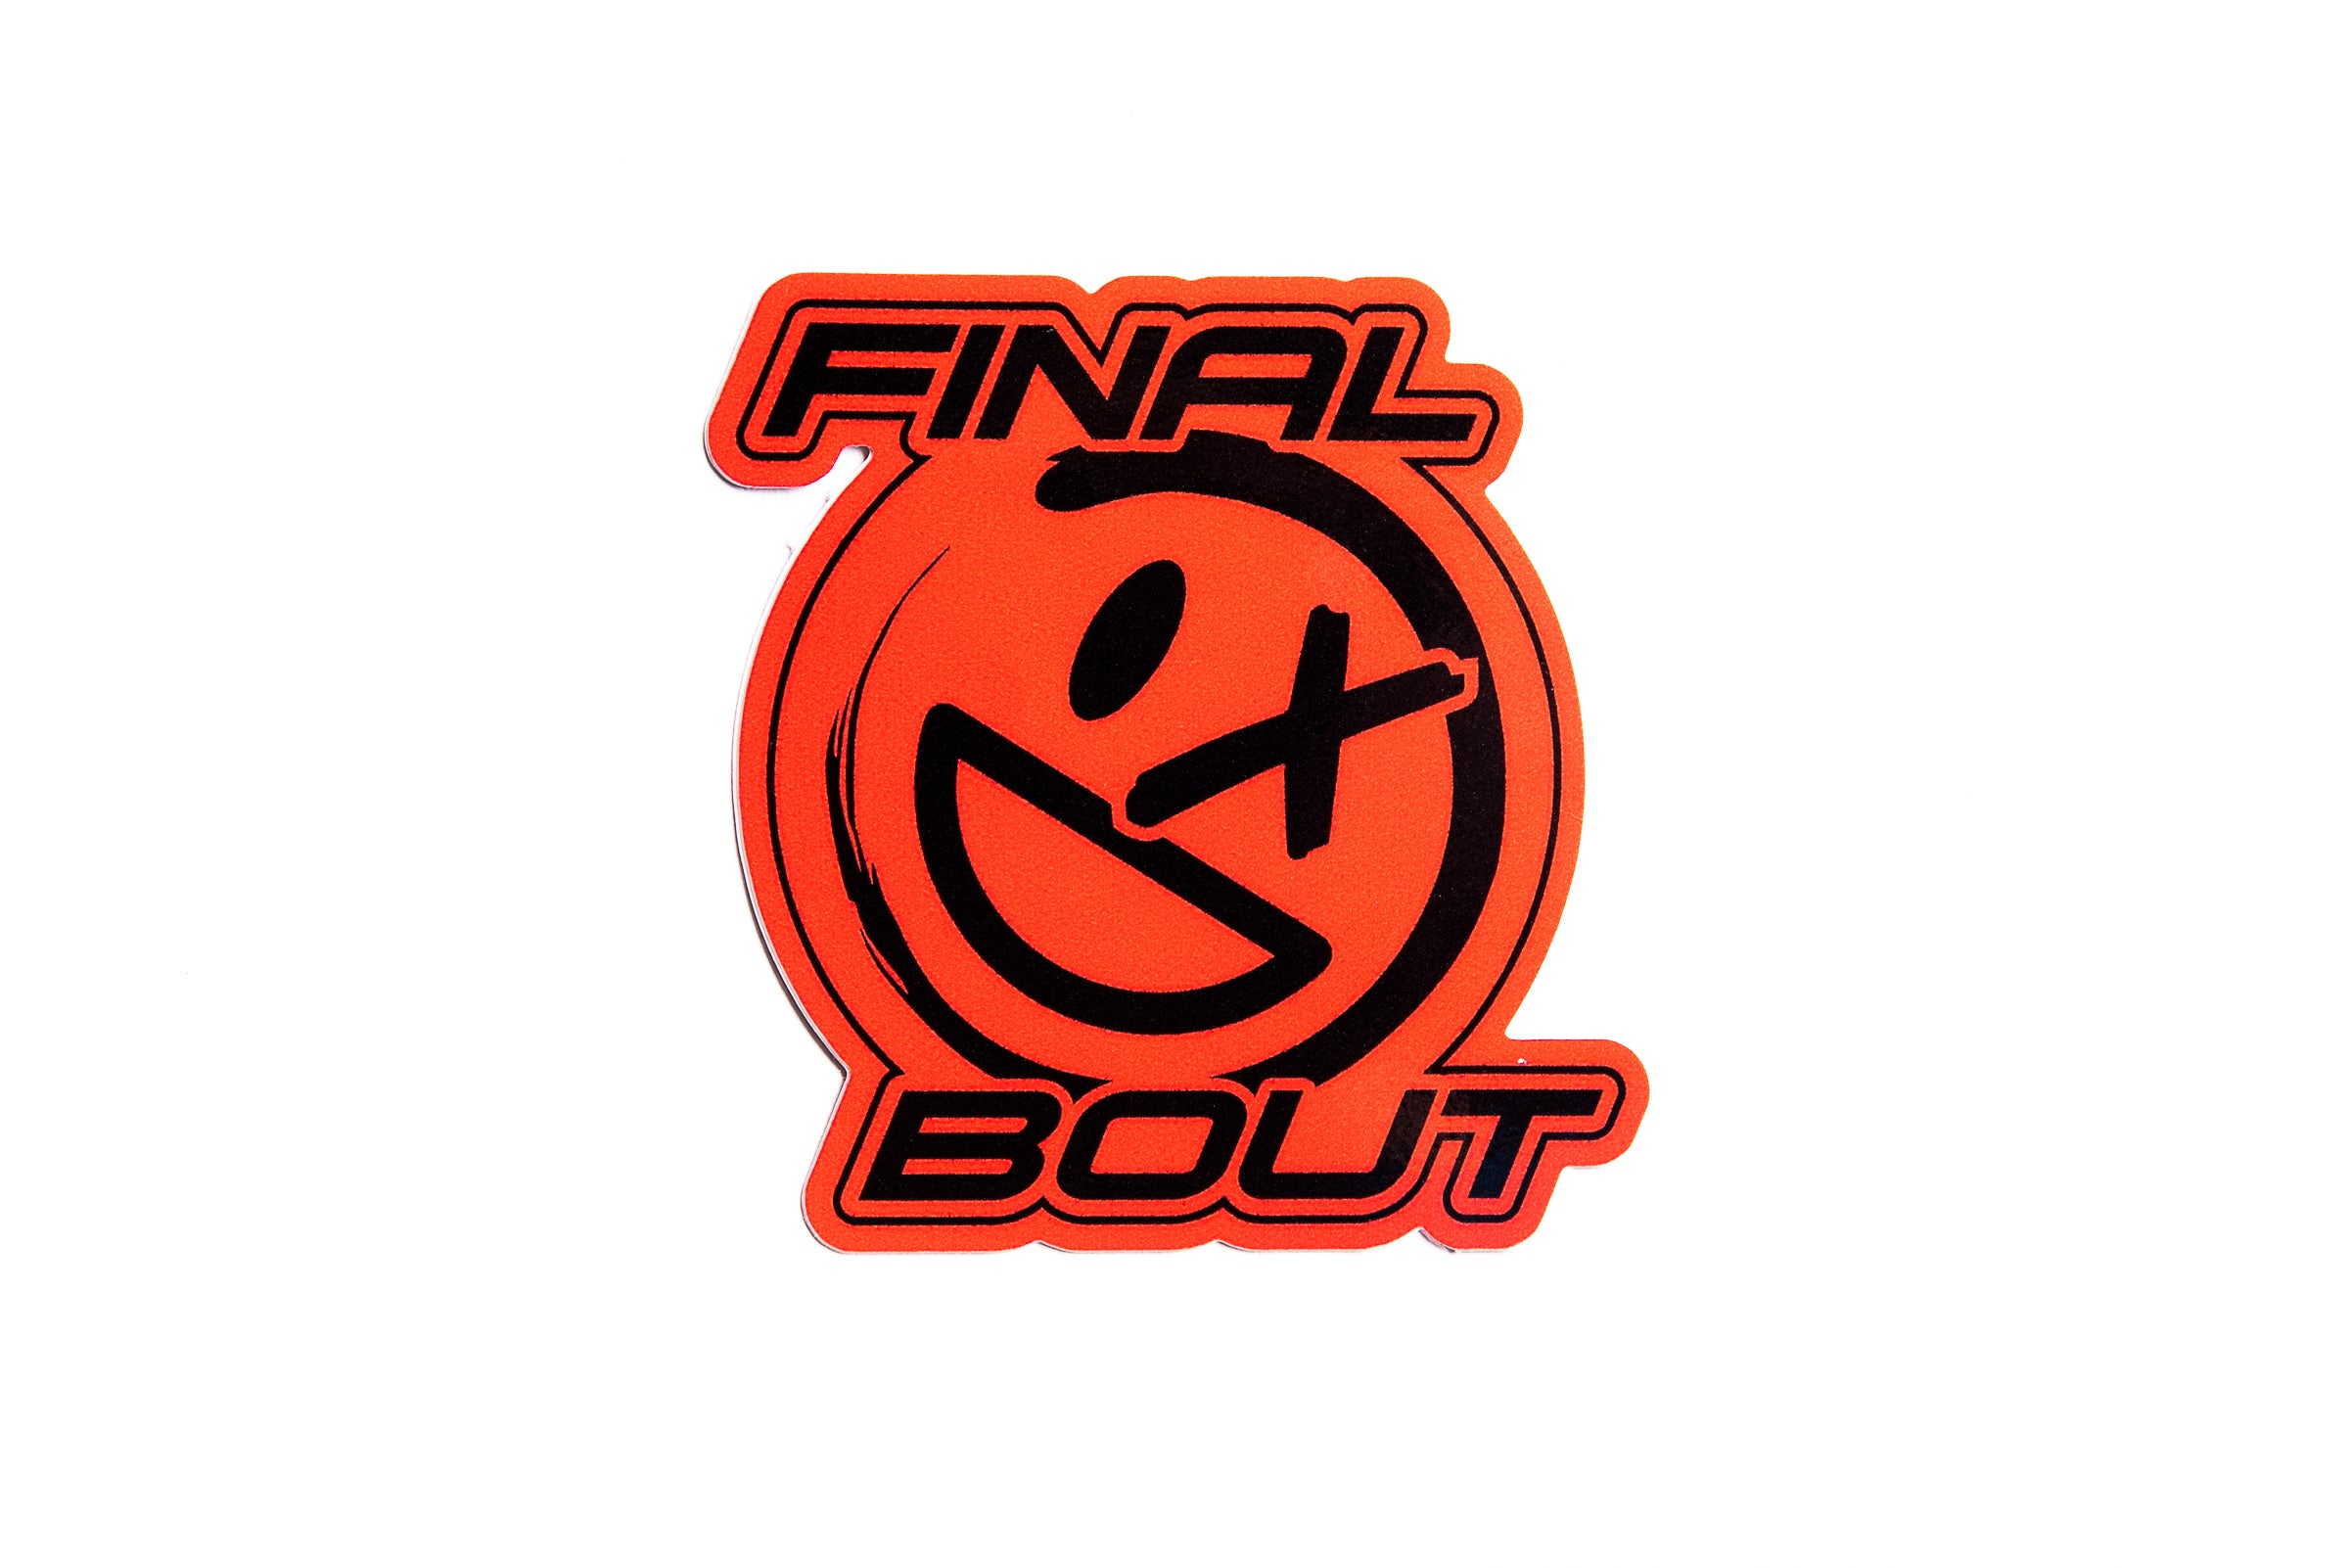 Final Bout Smiley Face [Color Options]